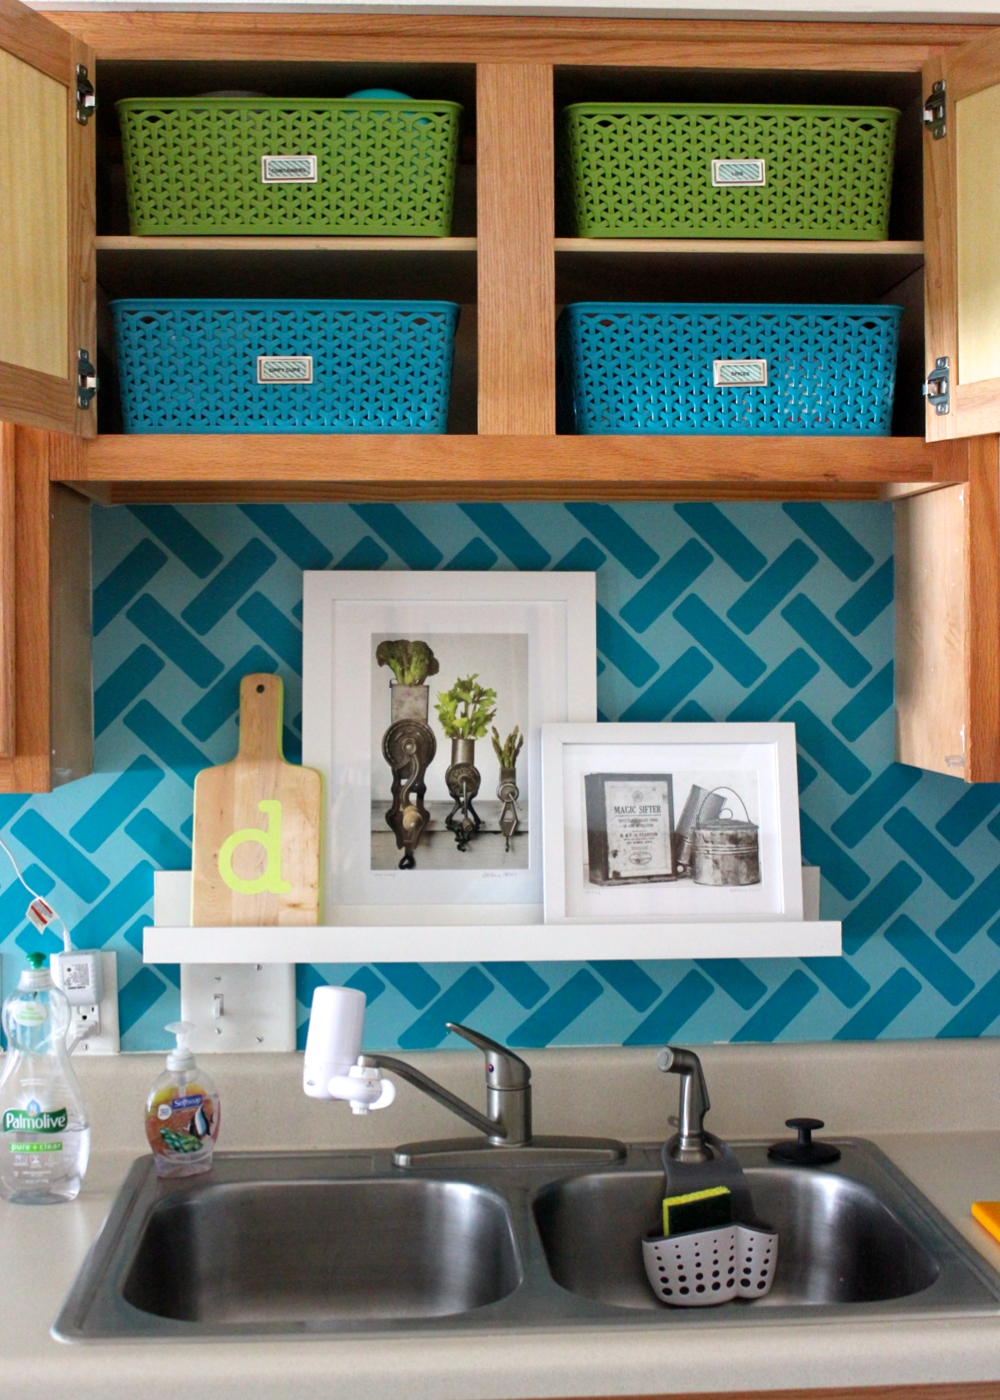 storage ideas for little upper cabinets upper kitchen cabinets Storage Ideas for Little Upper Cabinets Great ideas and solutions for using those small upper